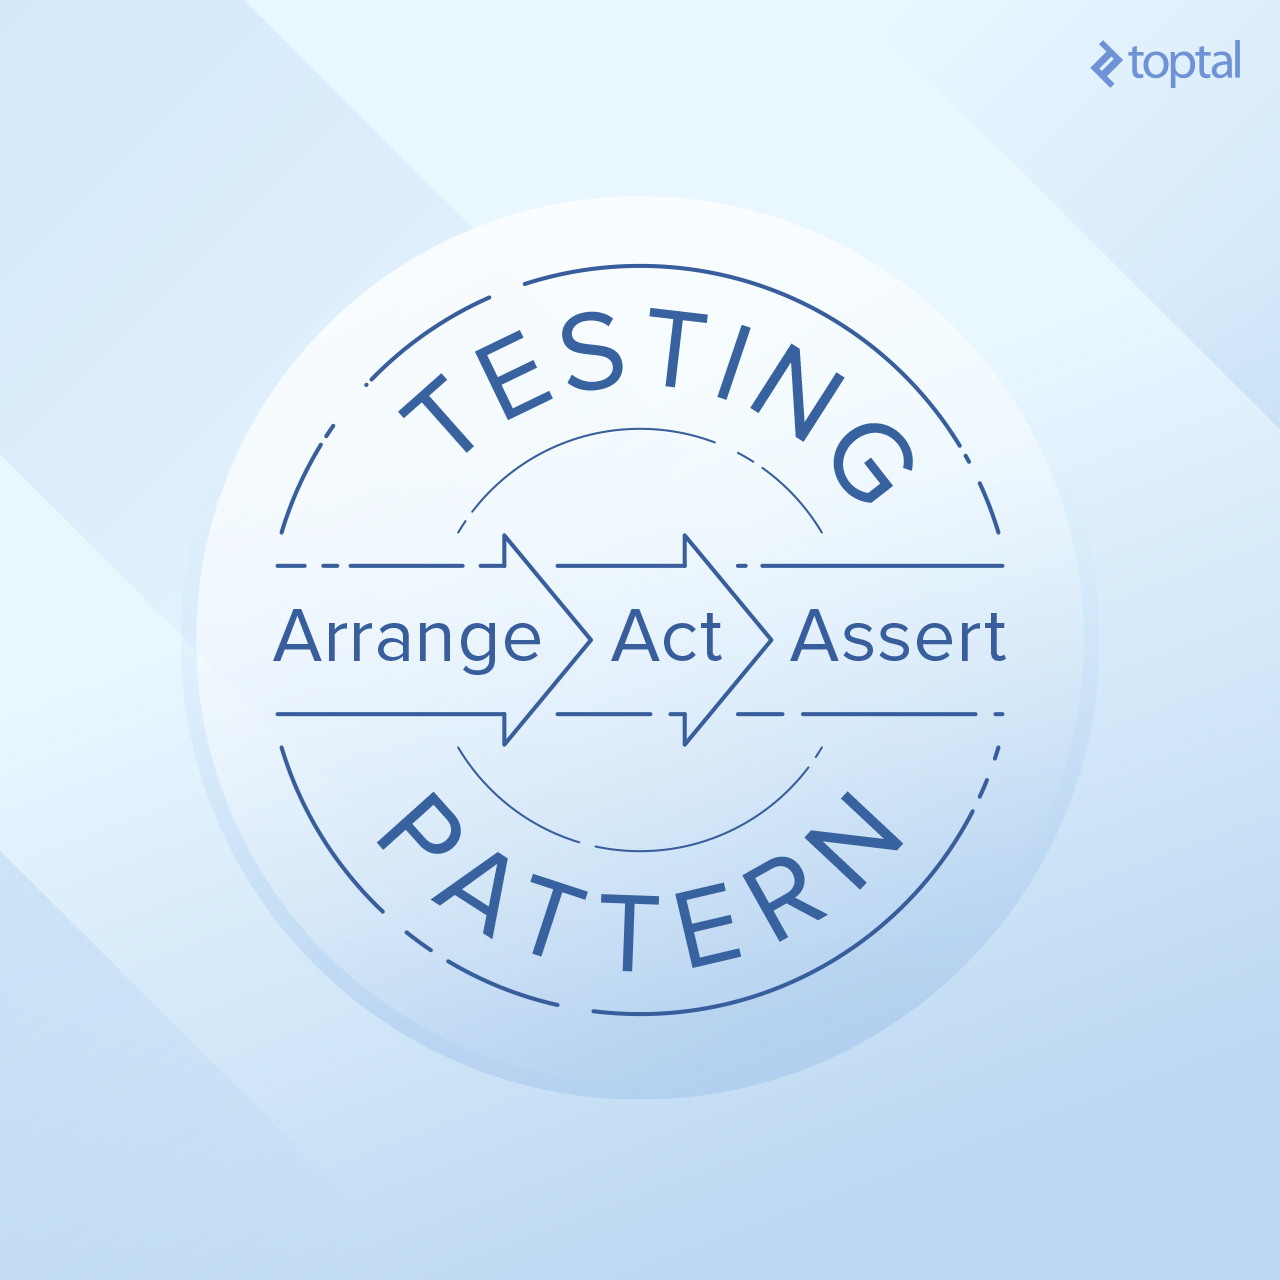 We'll follow the Arrange-Act-Assert pattern.